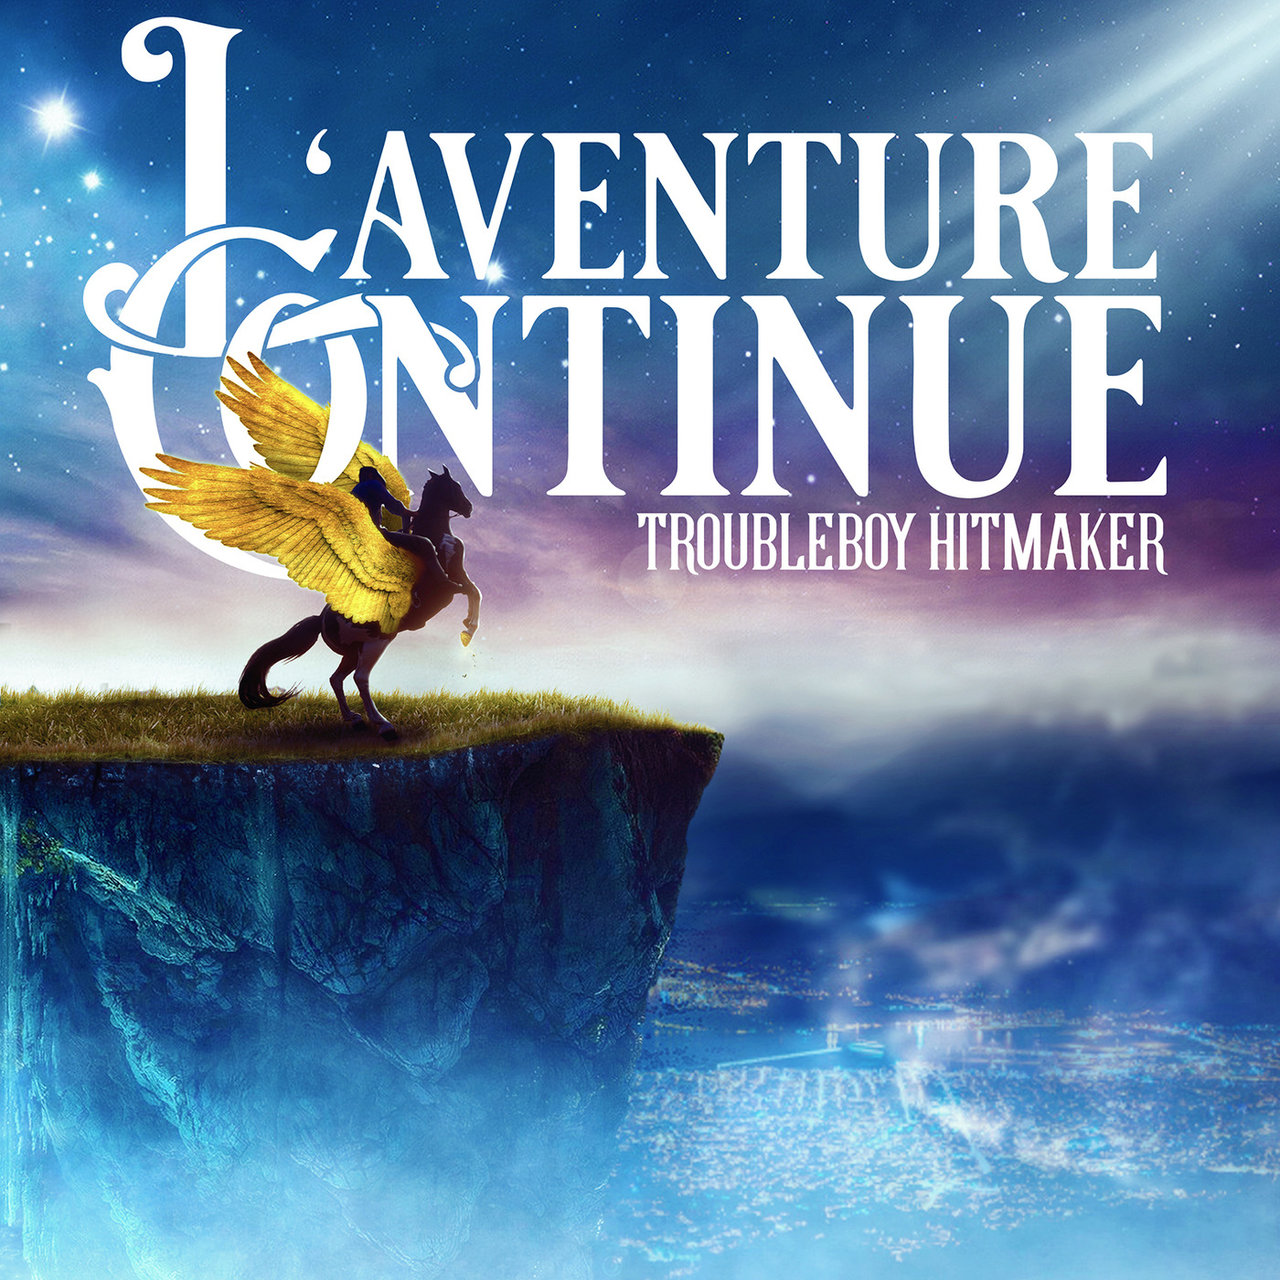 Troubleboy Hitmaker - L'aventure Continue (Cover)